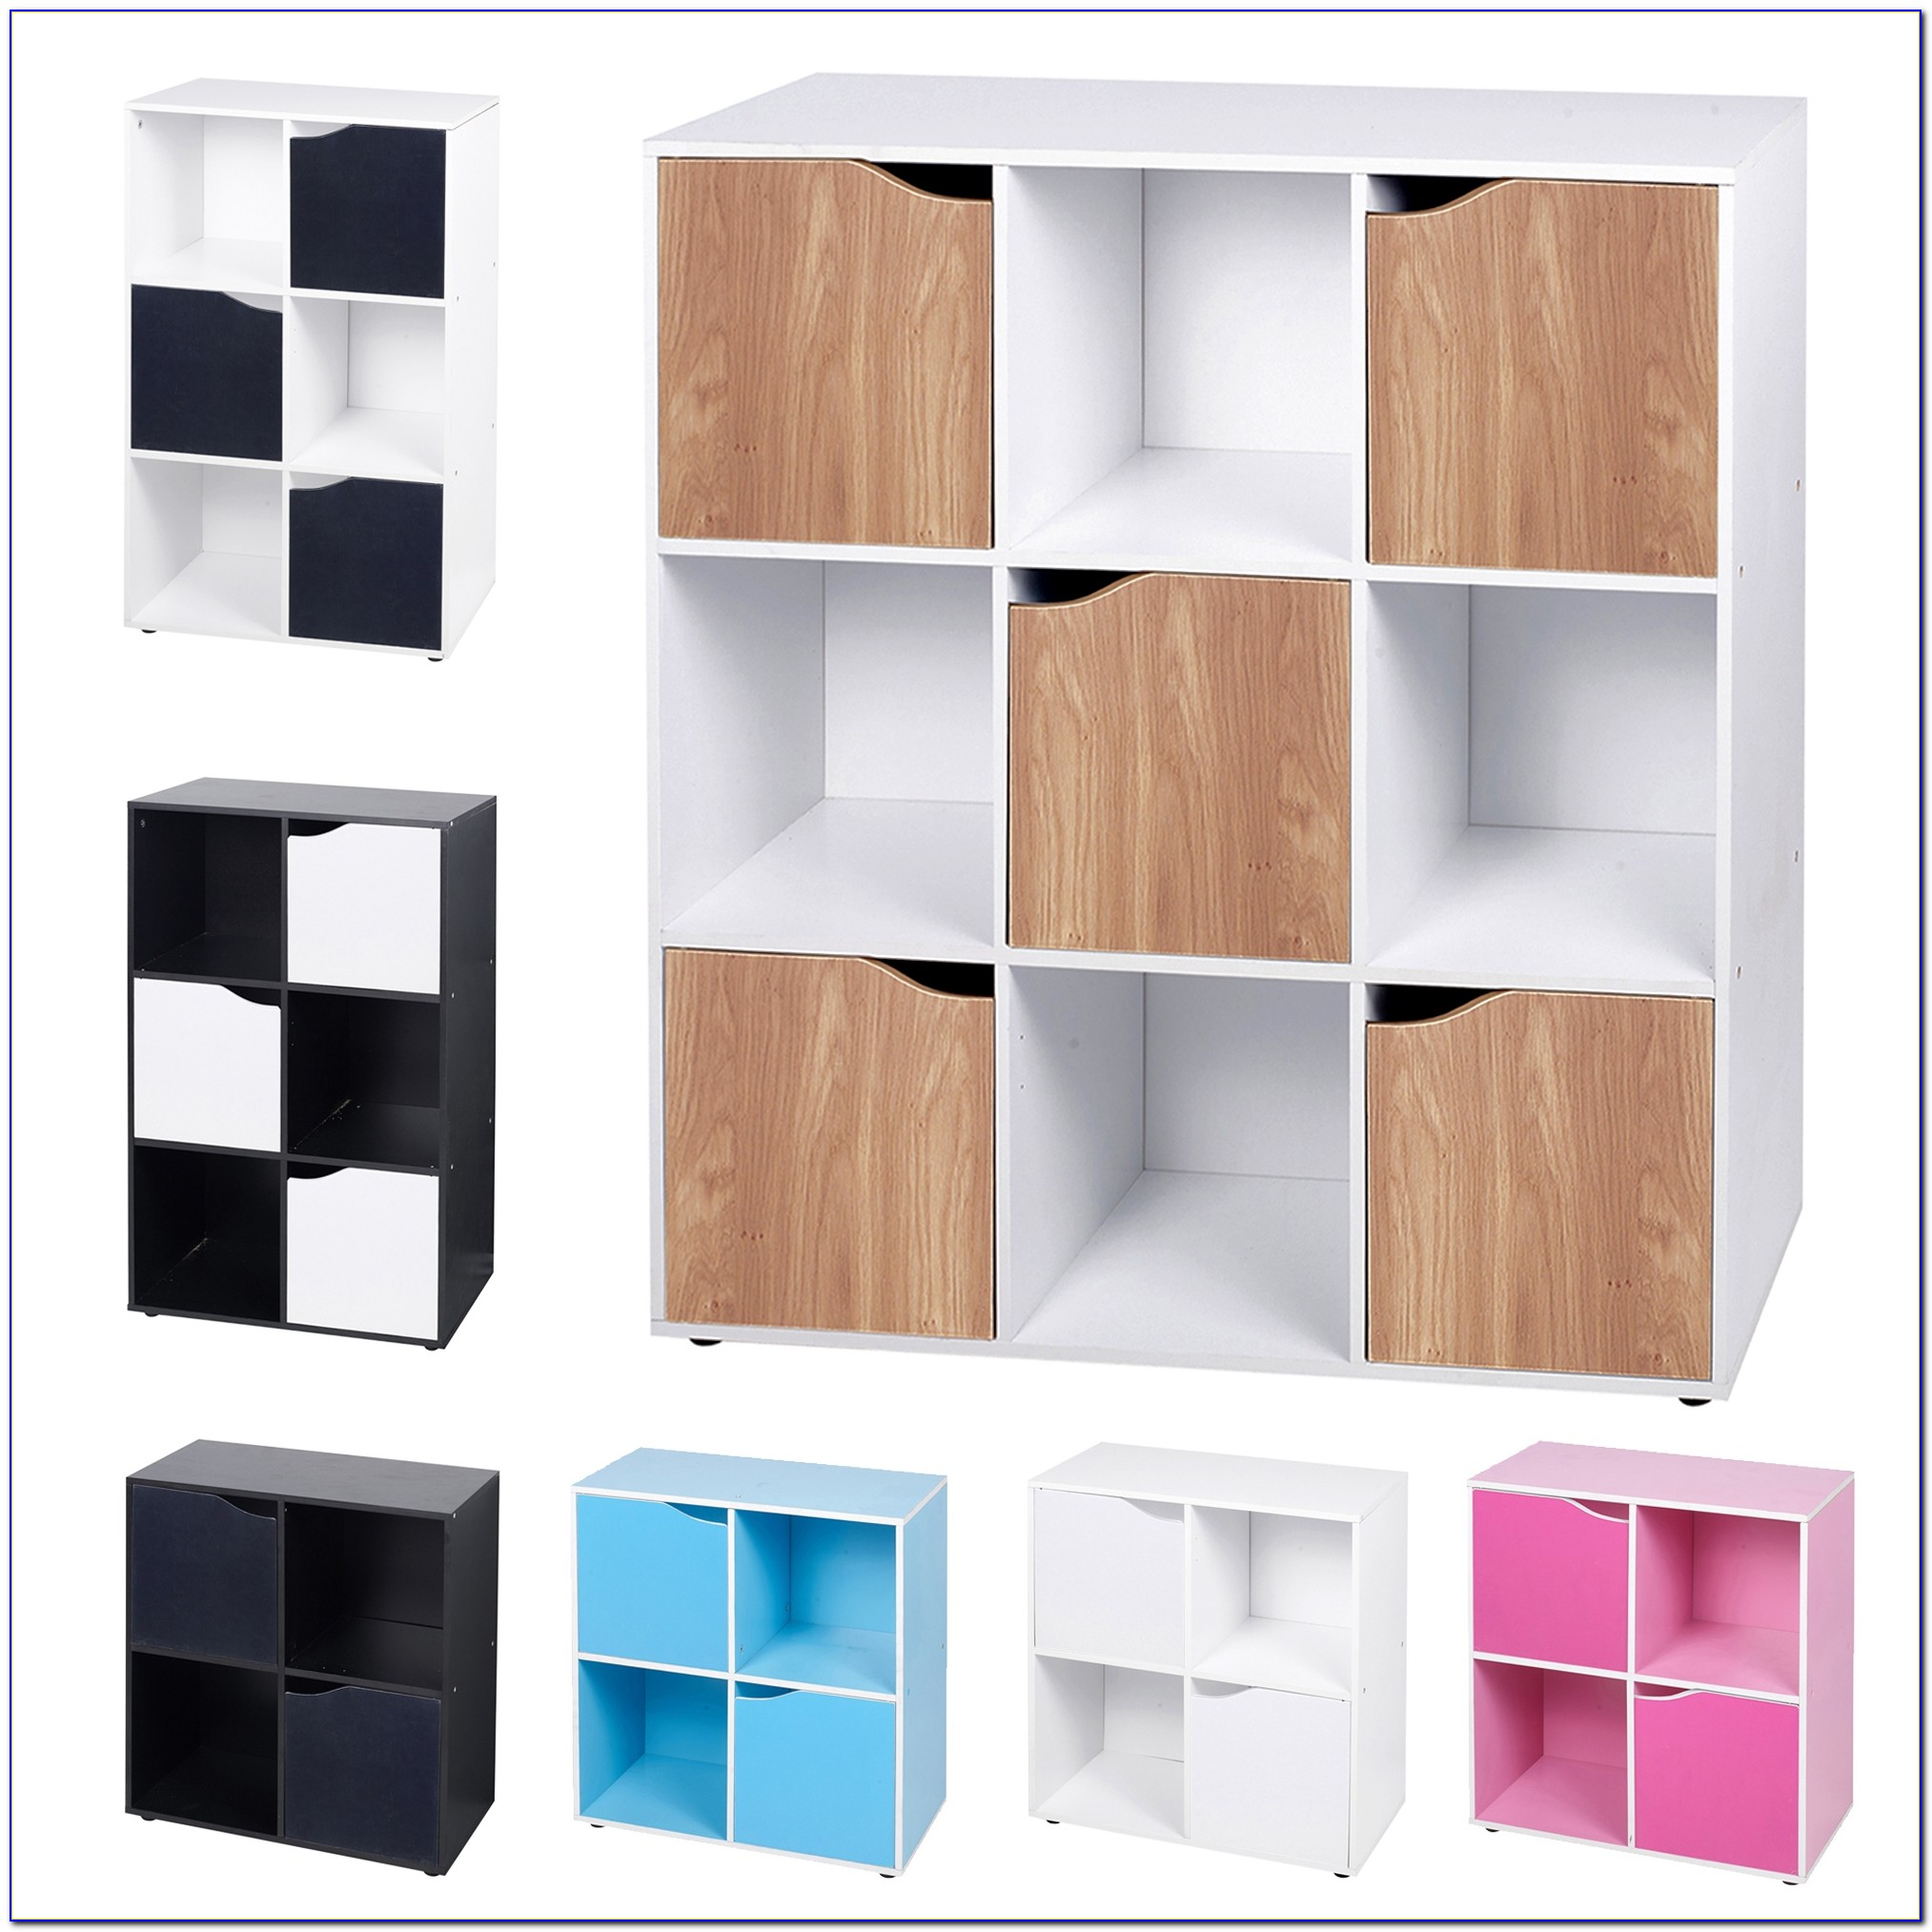 Bookshelves Shelving Unit